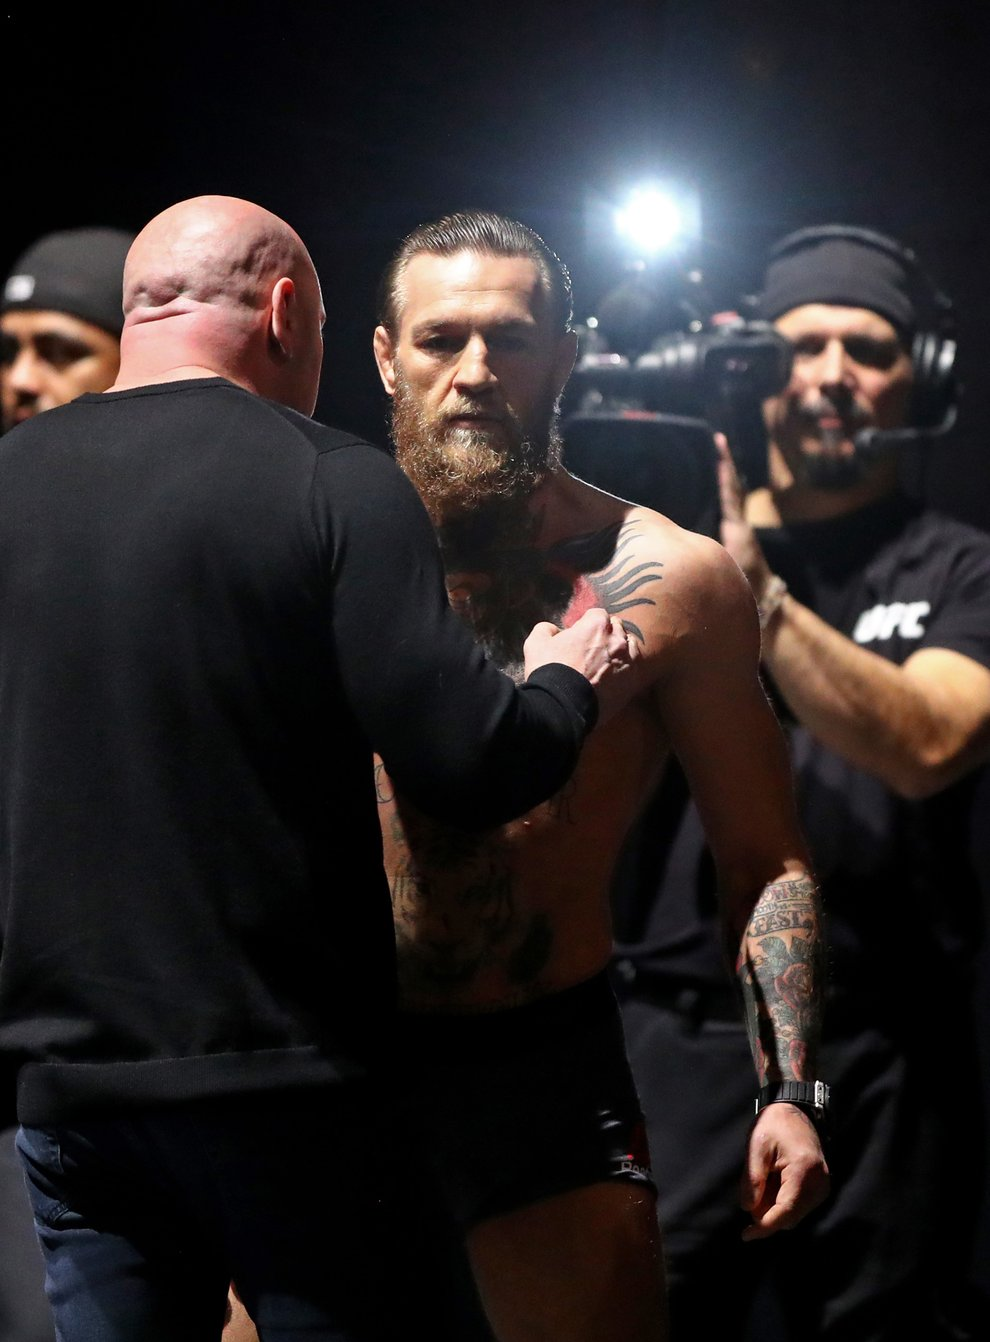 McGregor is expected to come out of retirement for a fight with Poirier in January